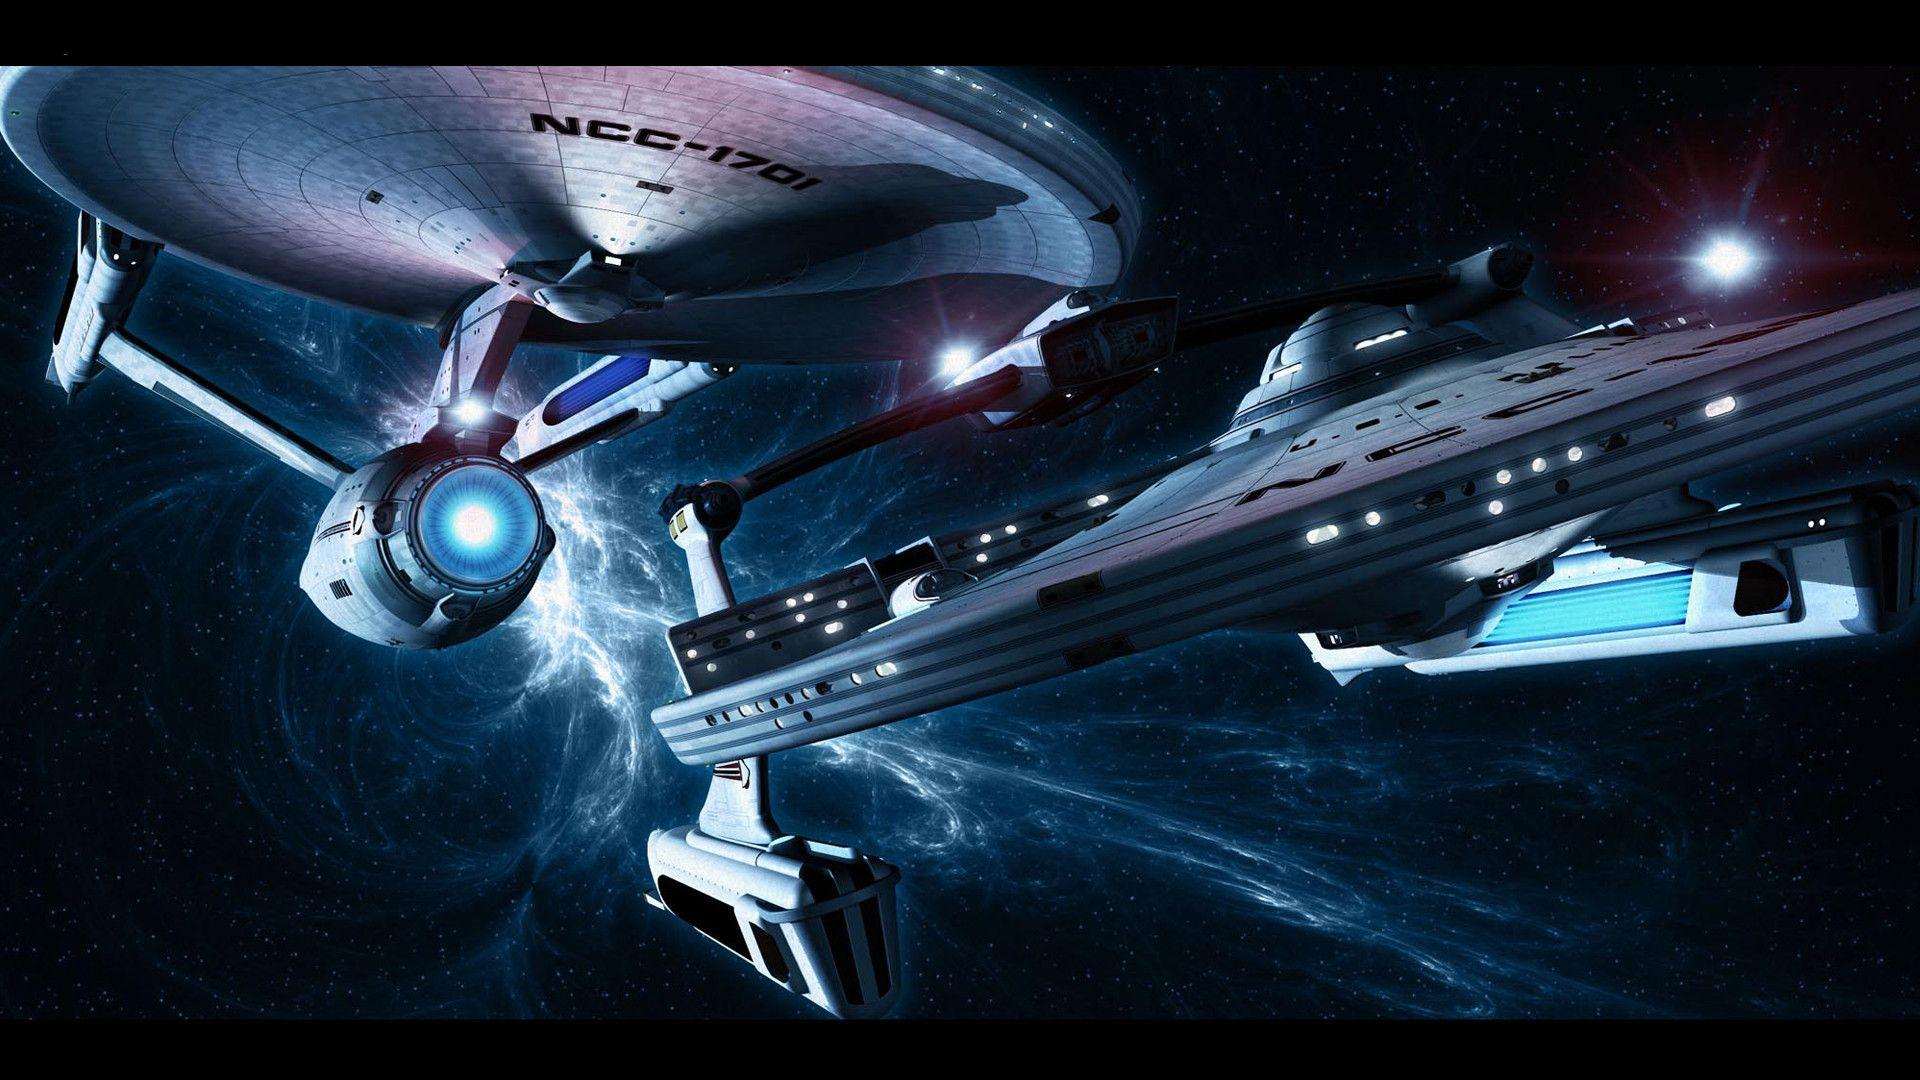 android star trek wallpaper 1920x1080 - photo #36